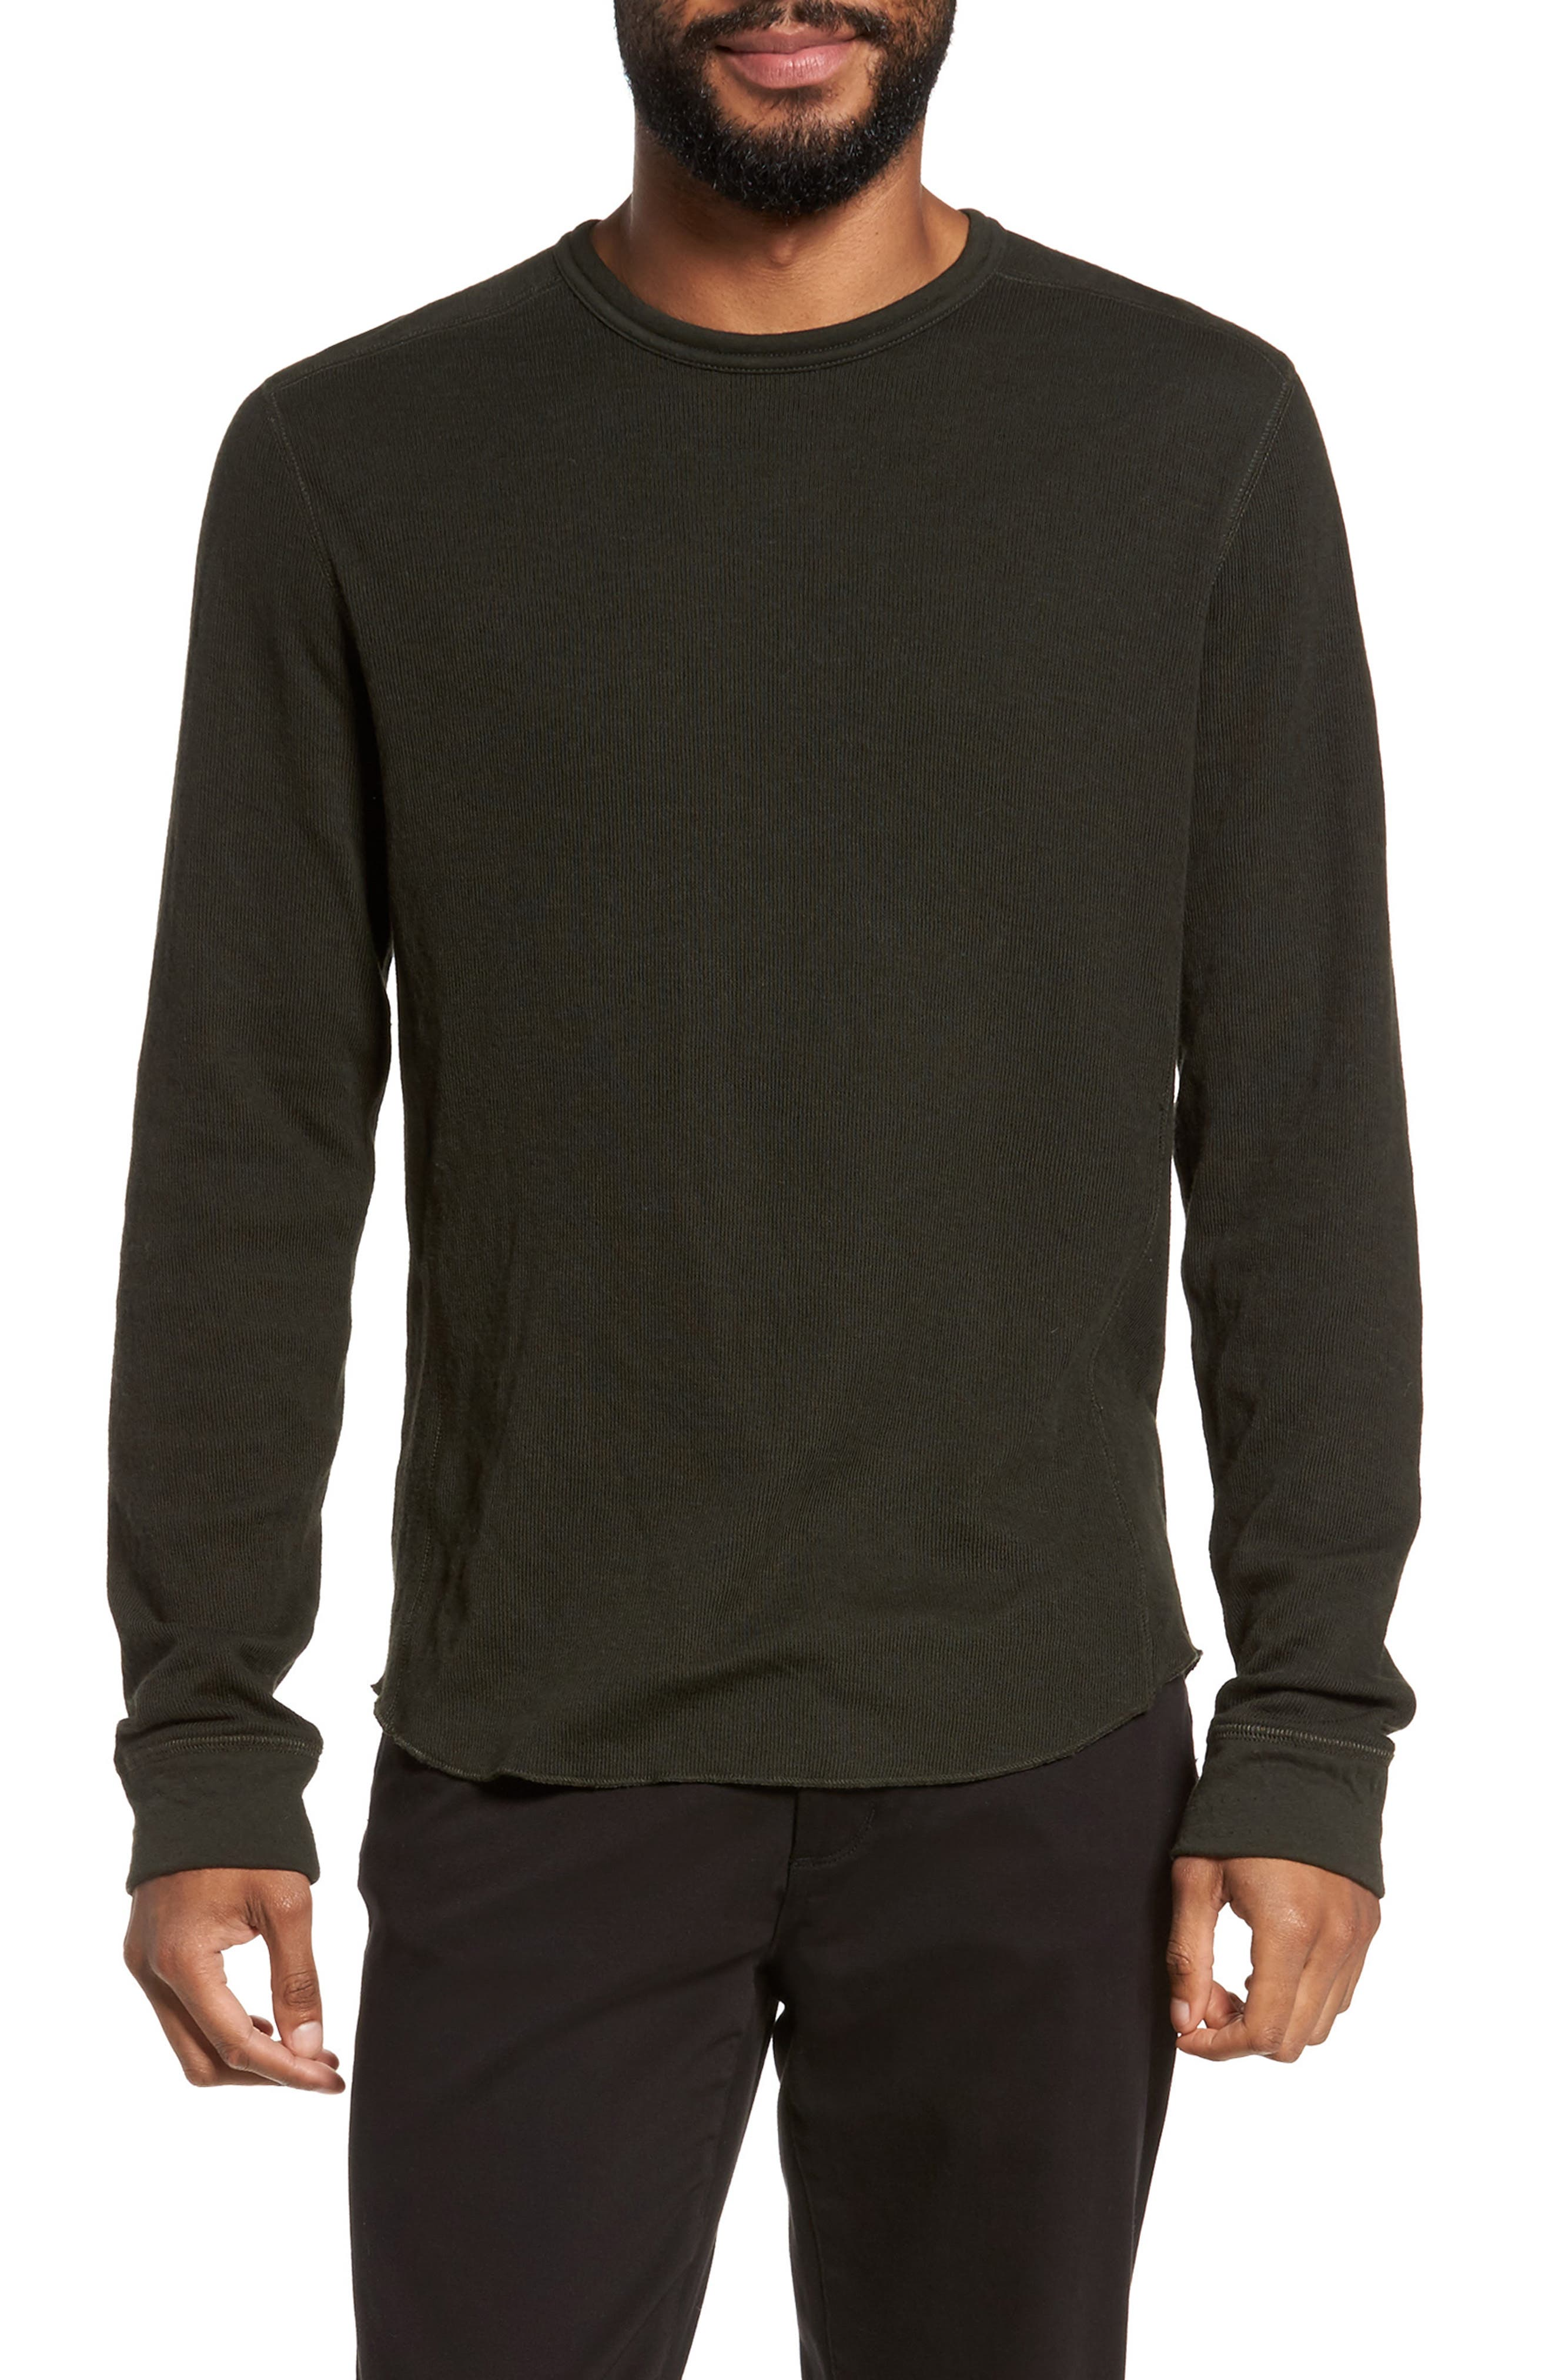 Main Image - Vince Double Knit Long Sleeve T-Shirt